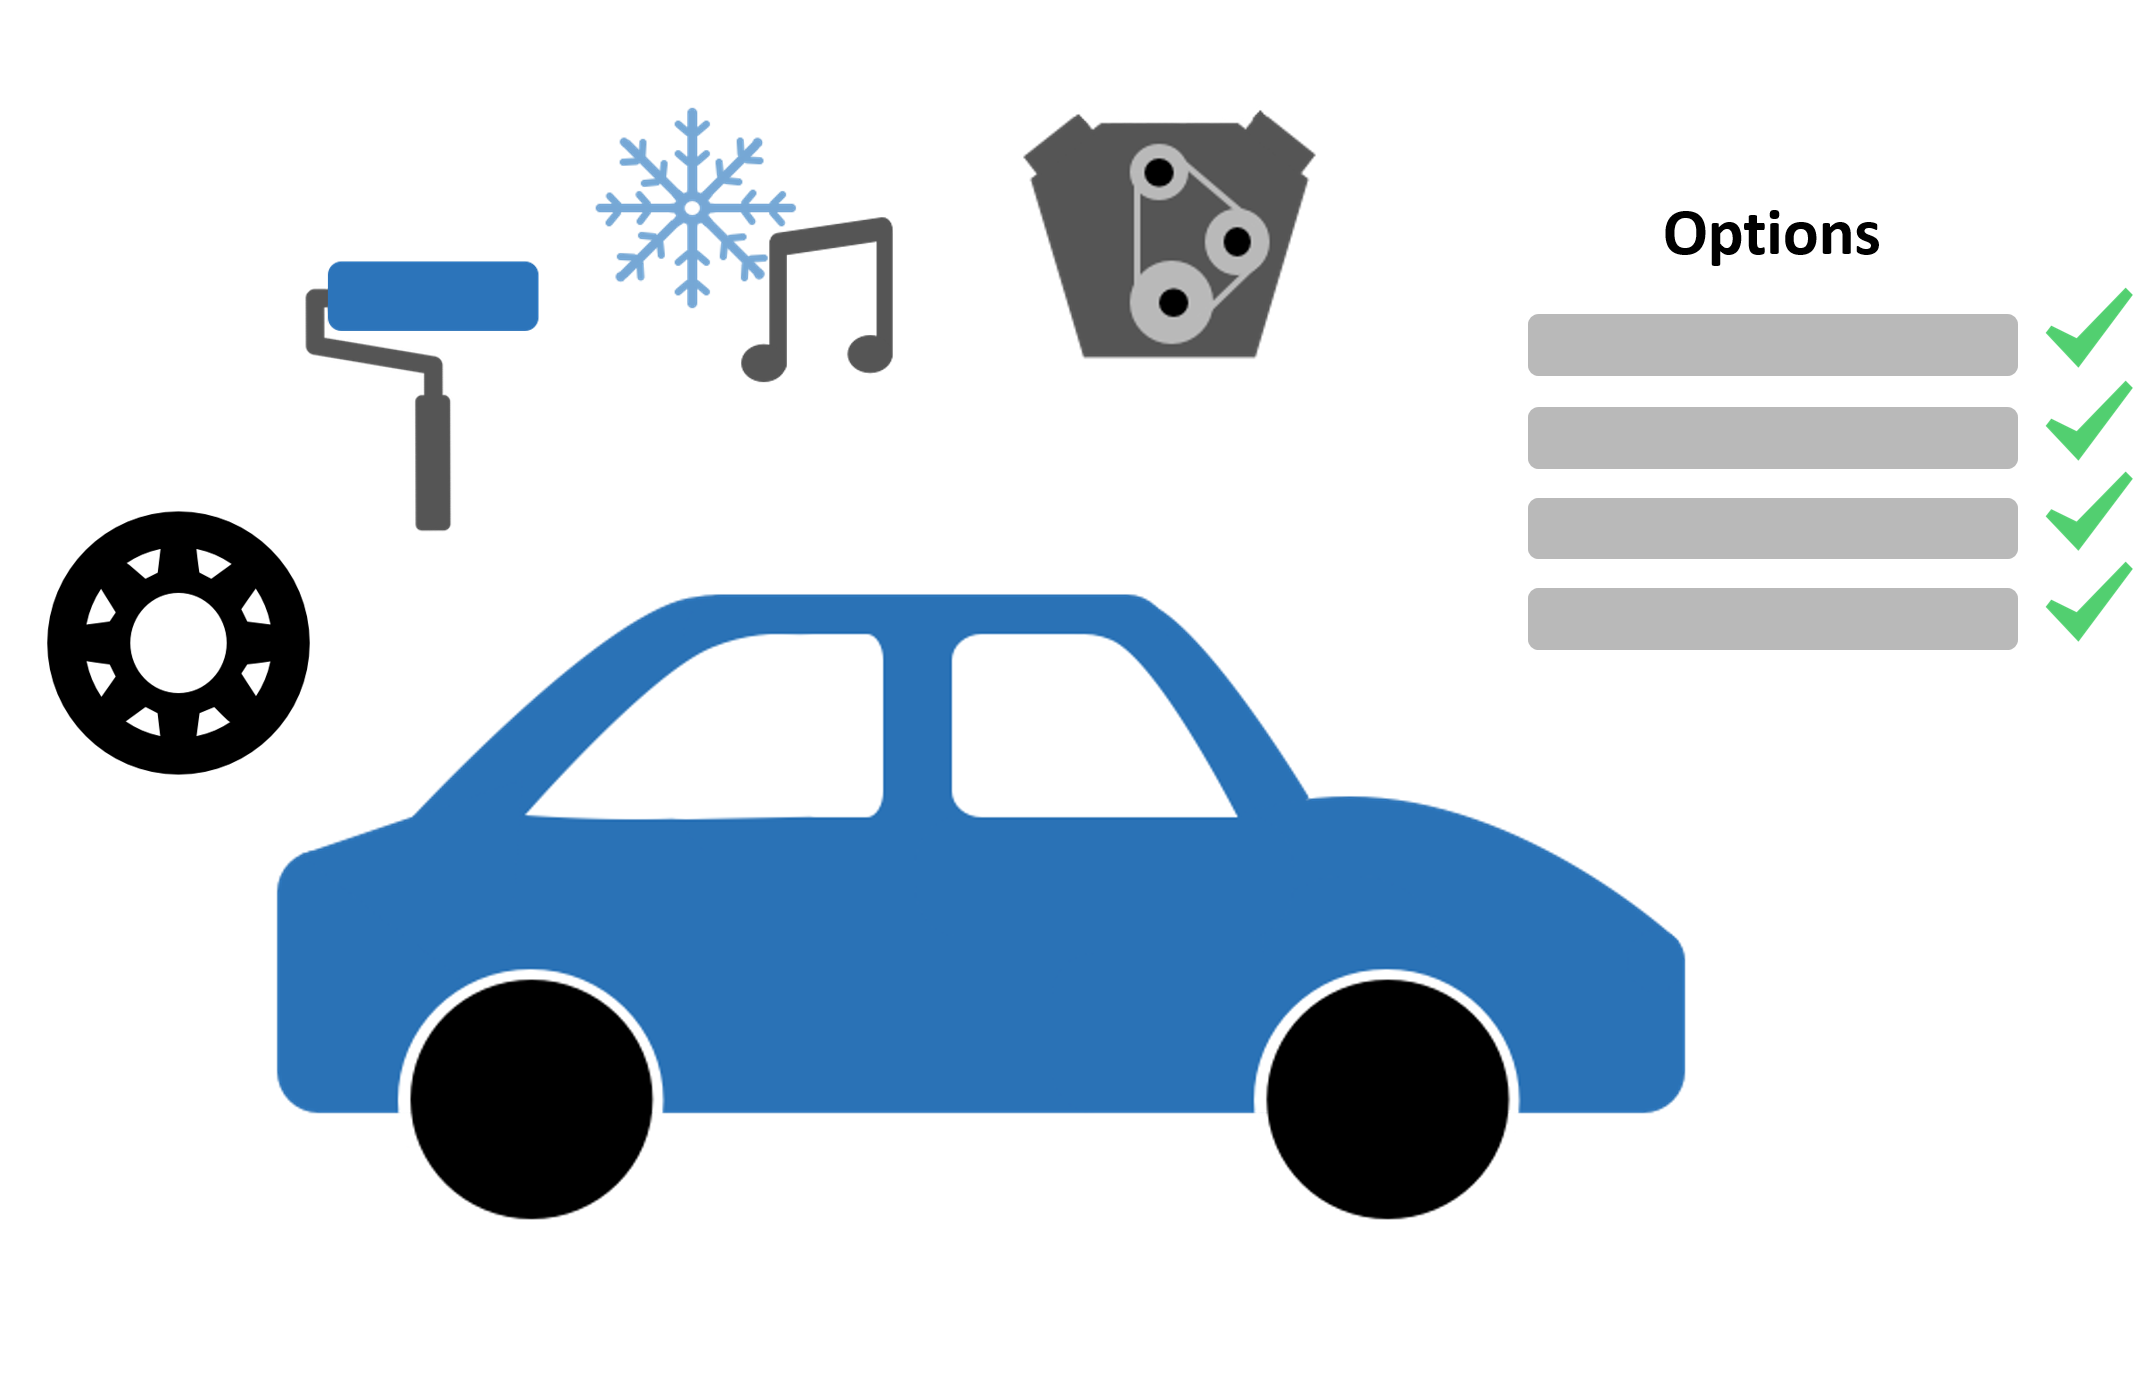 Car air conditioning clipart jpg library The user dashboard is a great example... - Opus Nebula jpg library